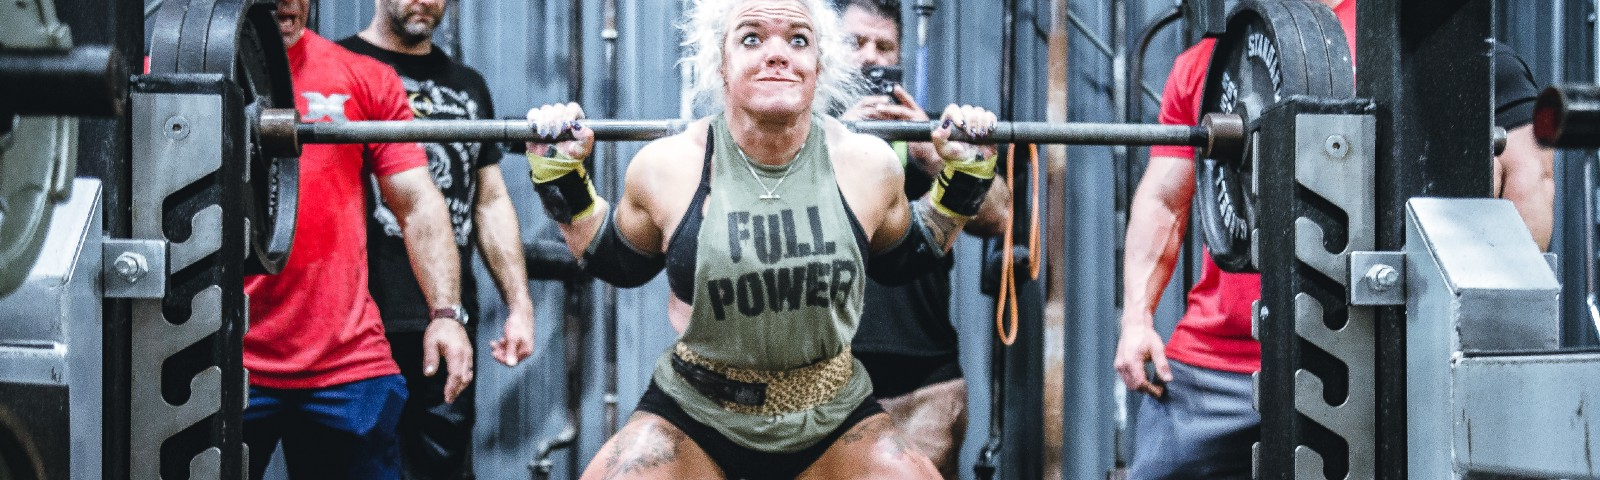 Woman lifting a very heavy barbell and grimacing